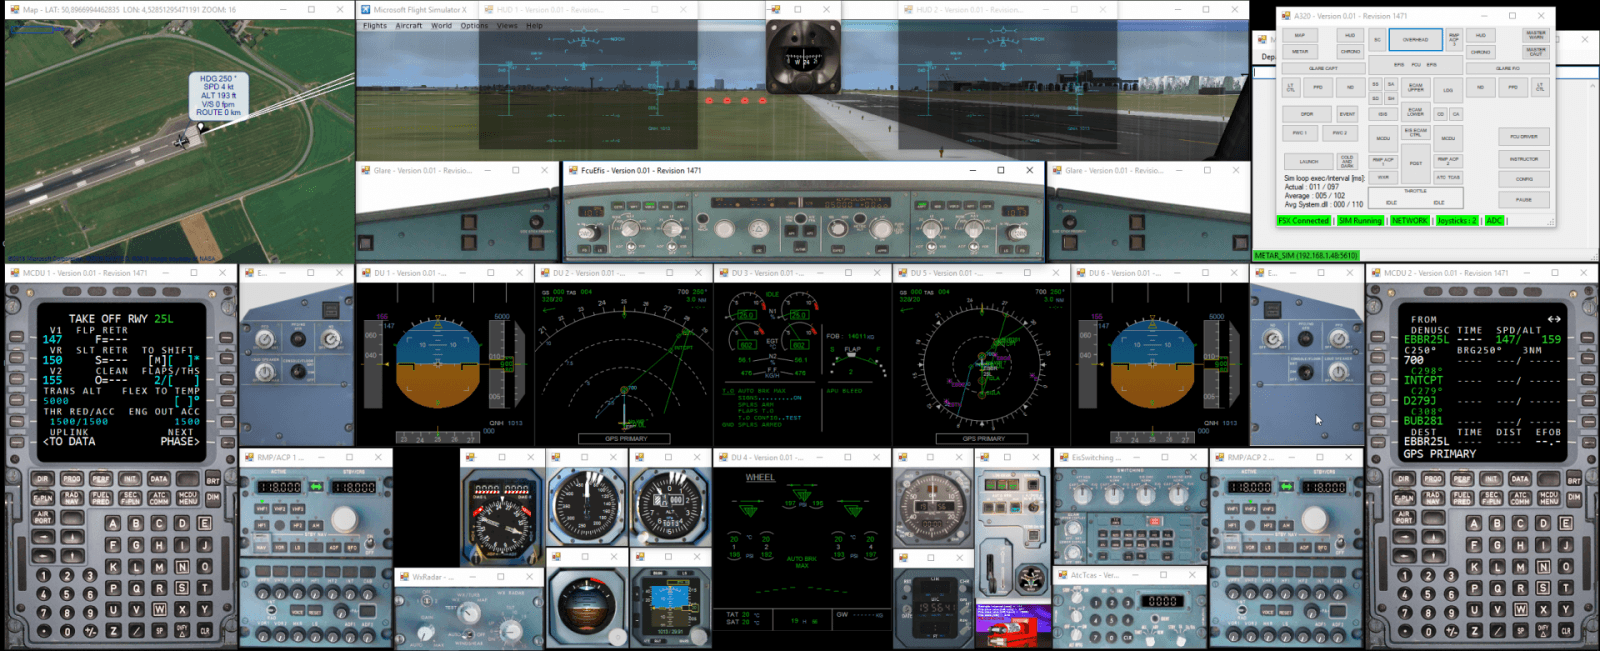 Simulator Software Overview